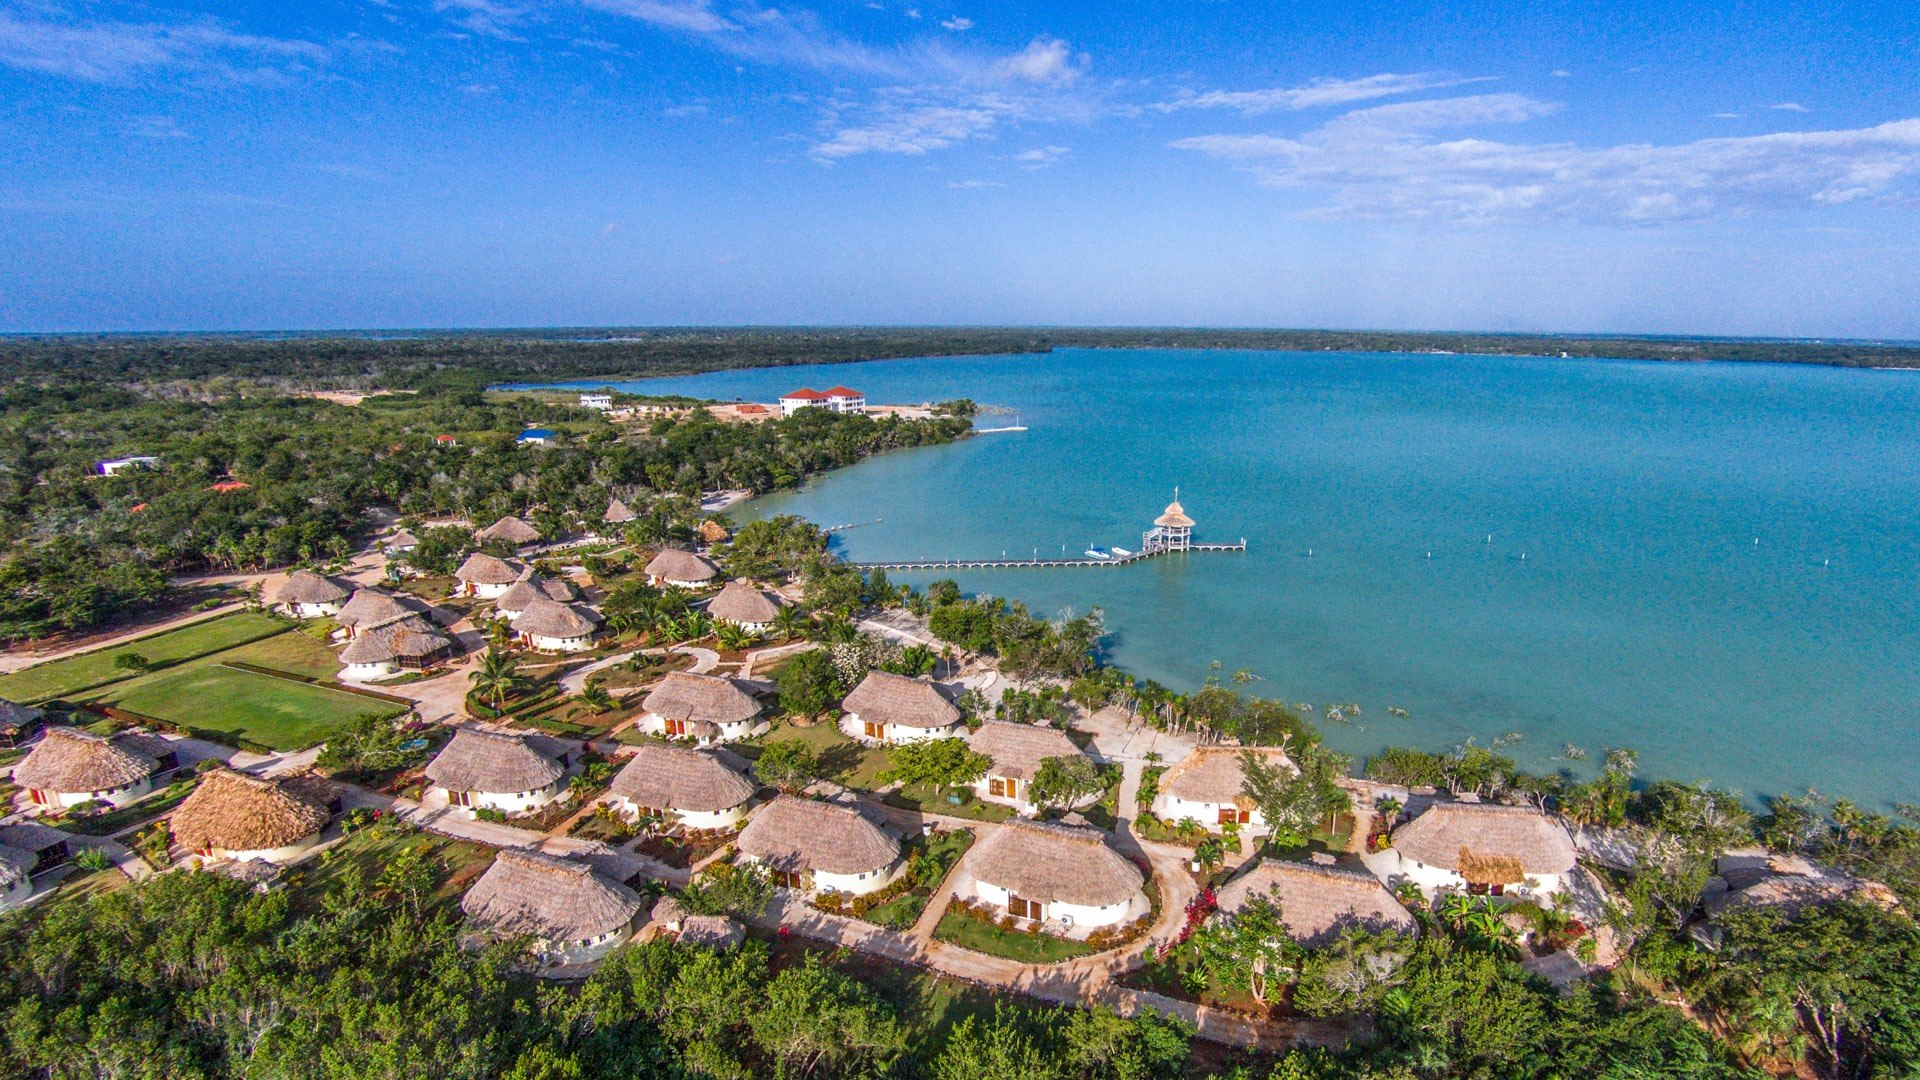 Of 20 Top Home Buying Markets in Latin America, Only Belize is #1